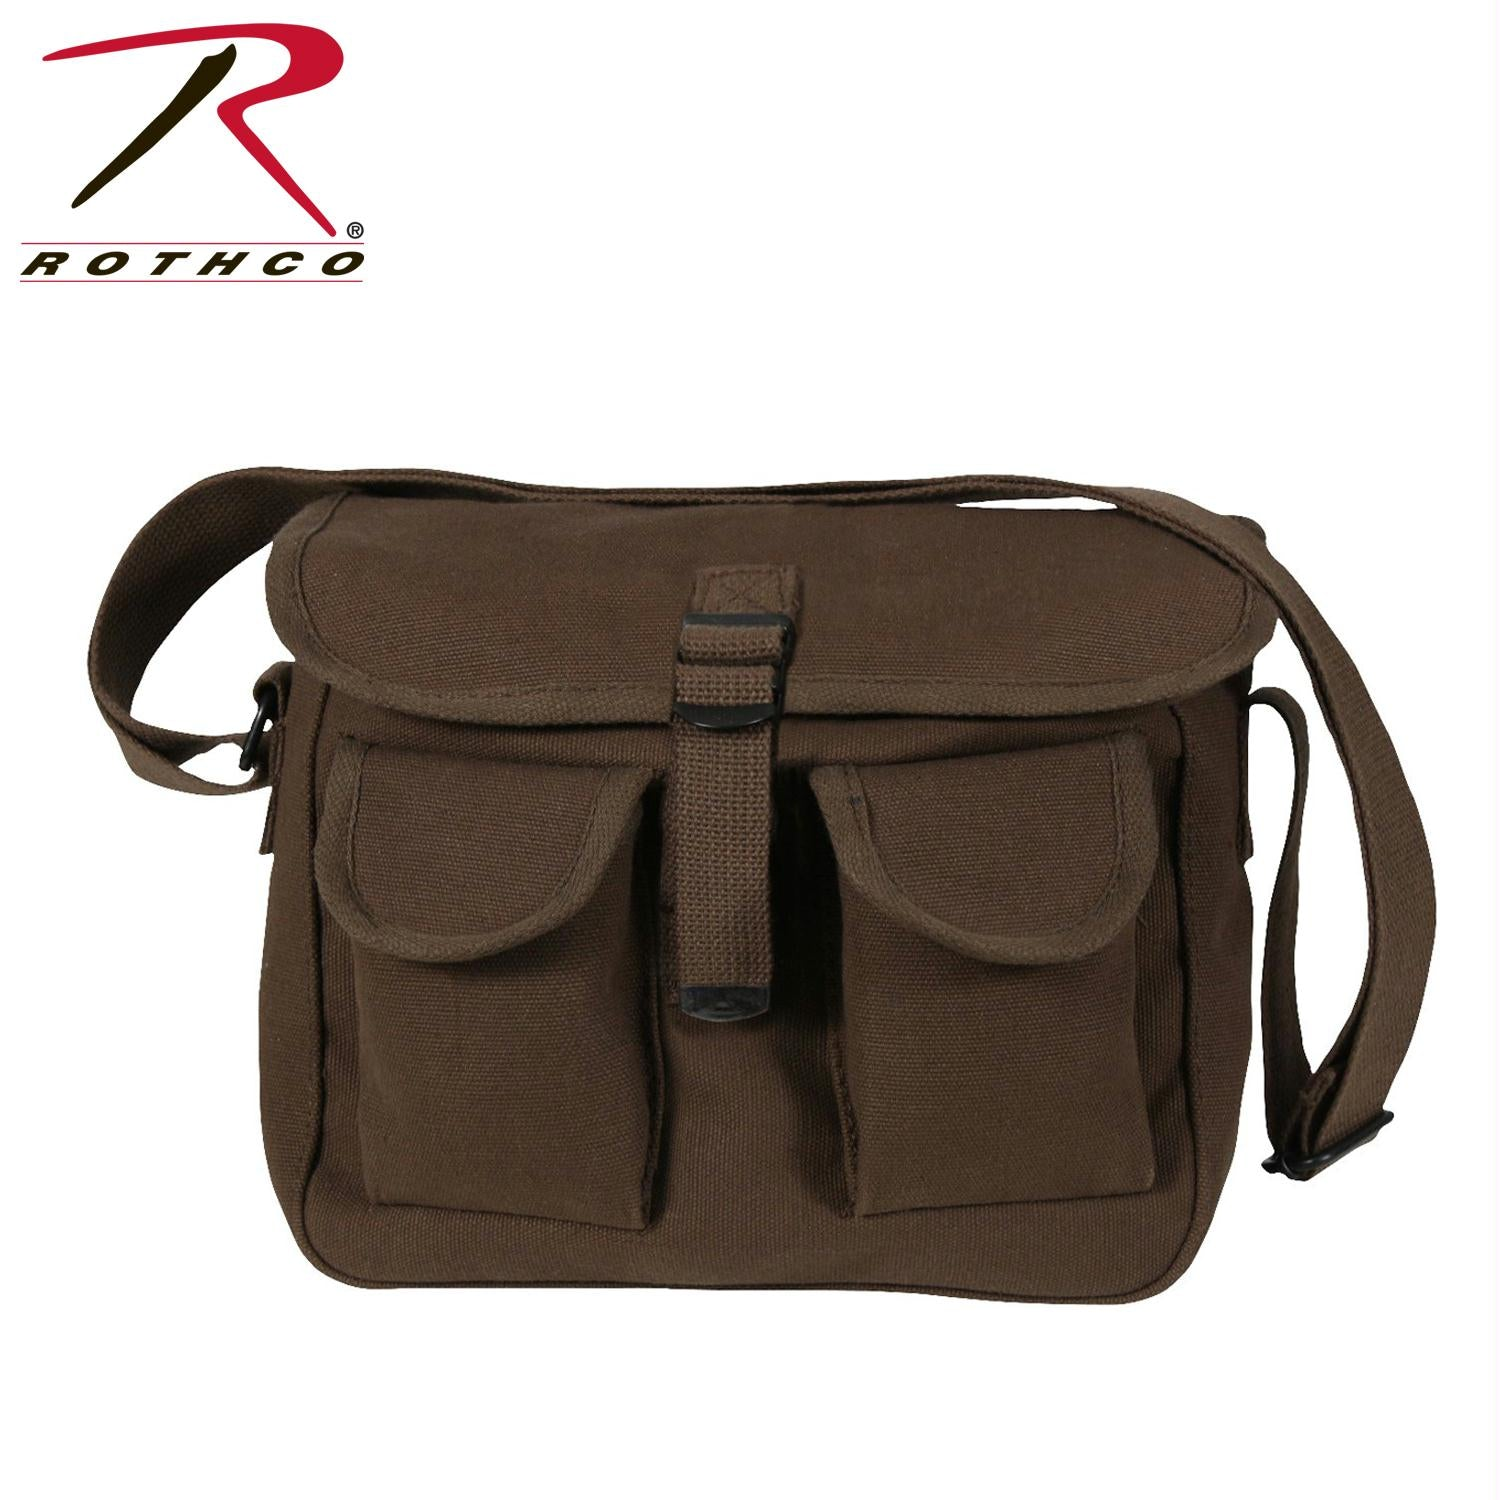 Rothco Canvas Ammo Shoulder Bag - Brown